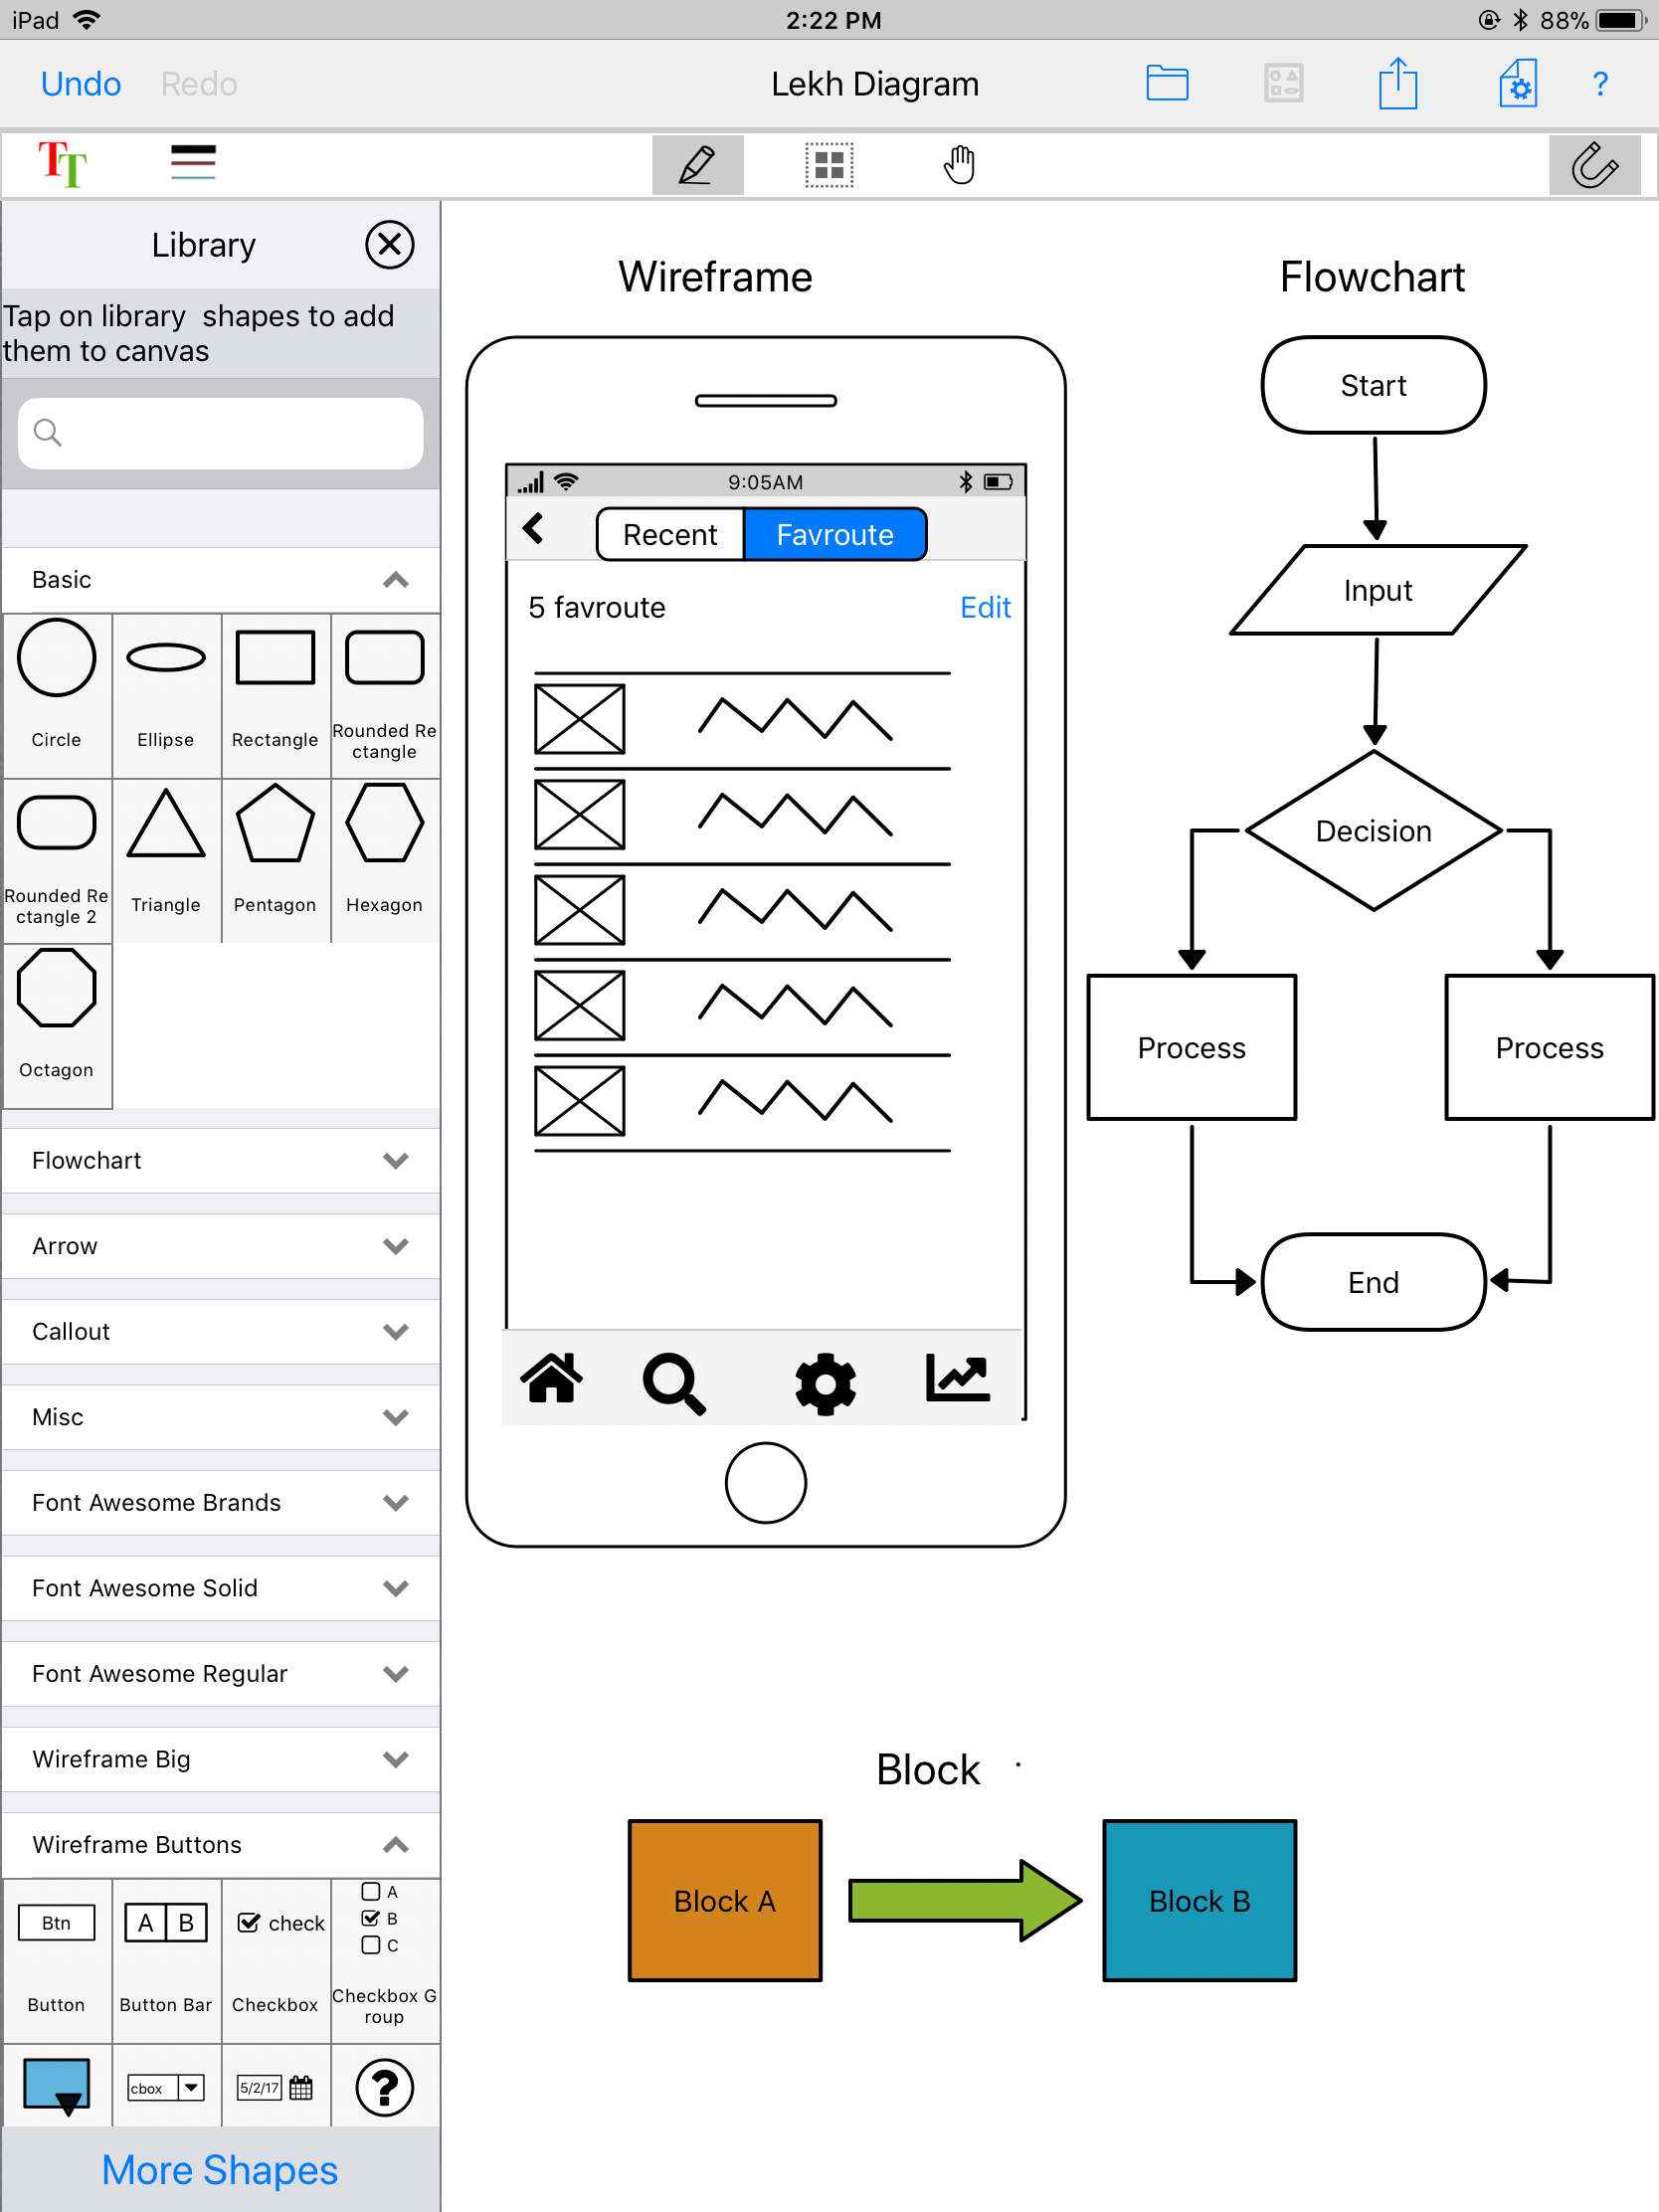 hight resolution of create beautiful diagrams and ui wireframes with lekh diagram a sketch recognition diagramming app on ios and android devices